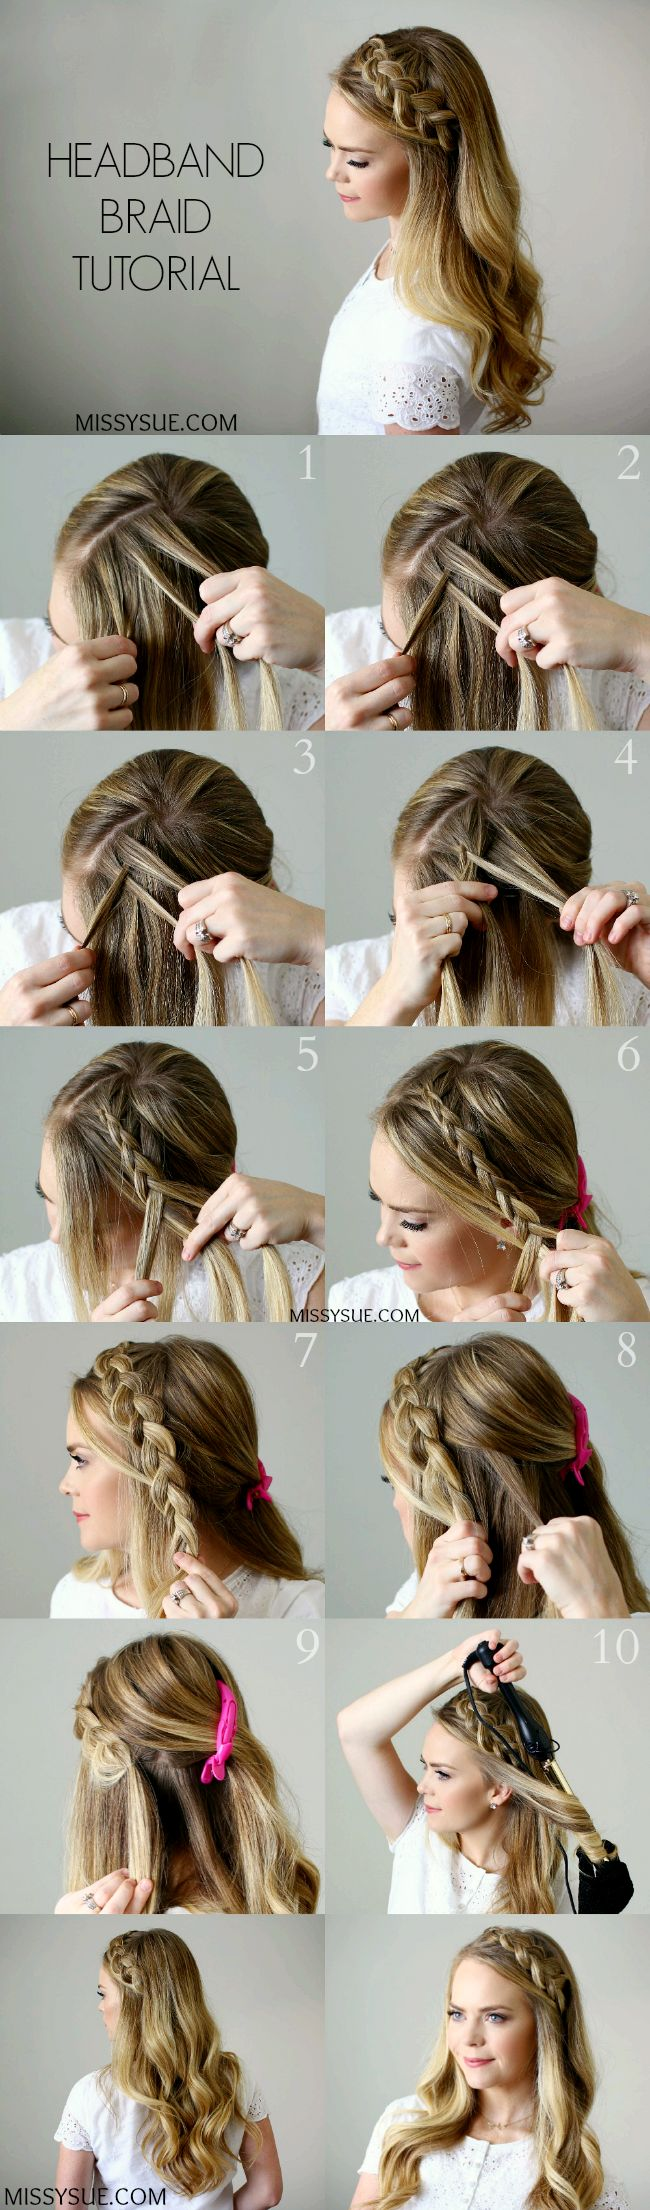 dutch-headband-braid-tutorial